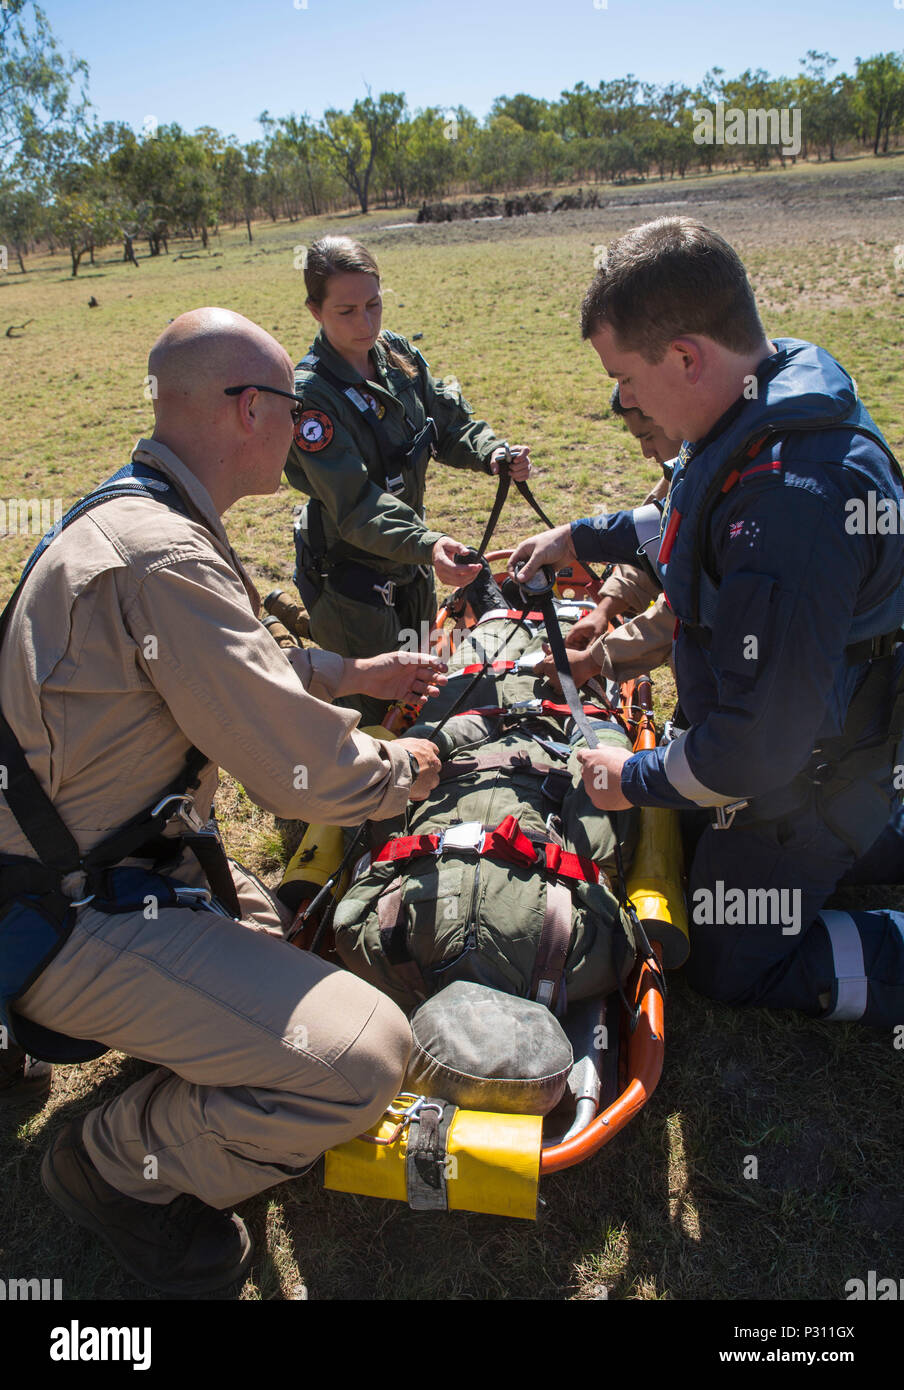 Marine Fighter Attack Squadron (VMFA) 122 U.S. Navy Lt. Matthew Case, flight surgeon, Kurt Pride, rescue crewman with RAAF Tindal Search and Rescue, and Flying Officer Kimberly MacDonald, a nurse with the Royal Australian Air Force, ensure that all buckles and clips are secure during SAR training at Exercise Pitch Black 2016, Royal Australian Air Force Base Tindal, Australia, Aug. 16, 2016. The SAR team trains with local and international forces during exercises like Pitch Black to ensure all medical personnel that can respond to an aircraft emergency are capable of carrying out the same proce - Stock Image